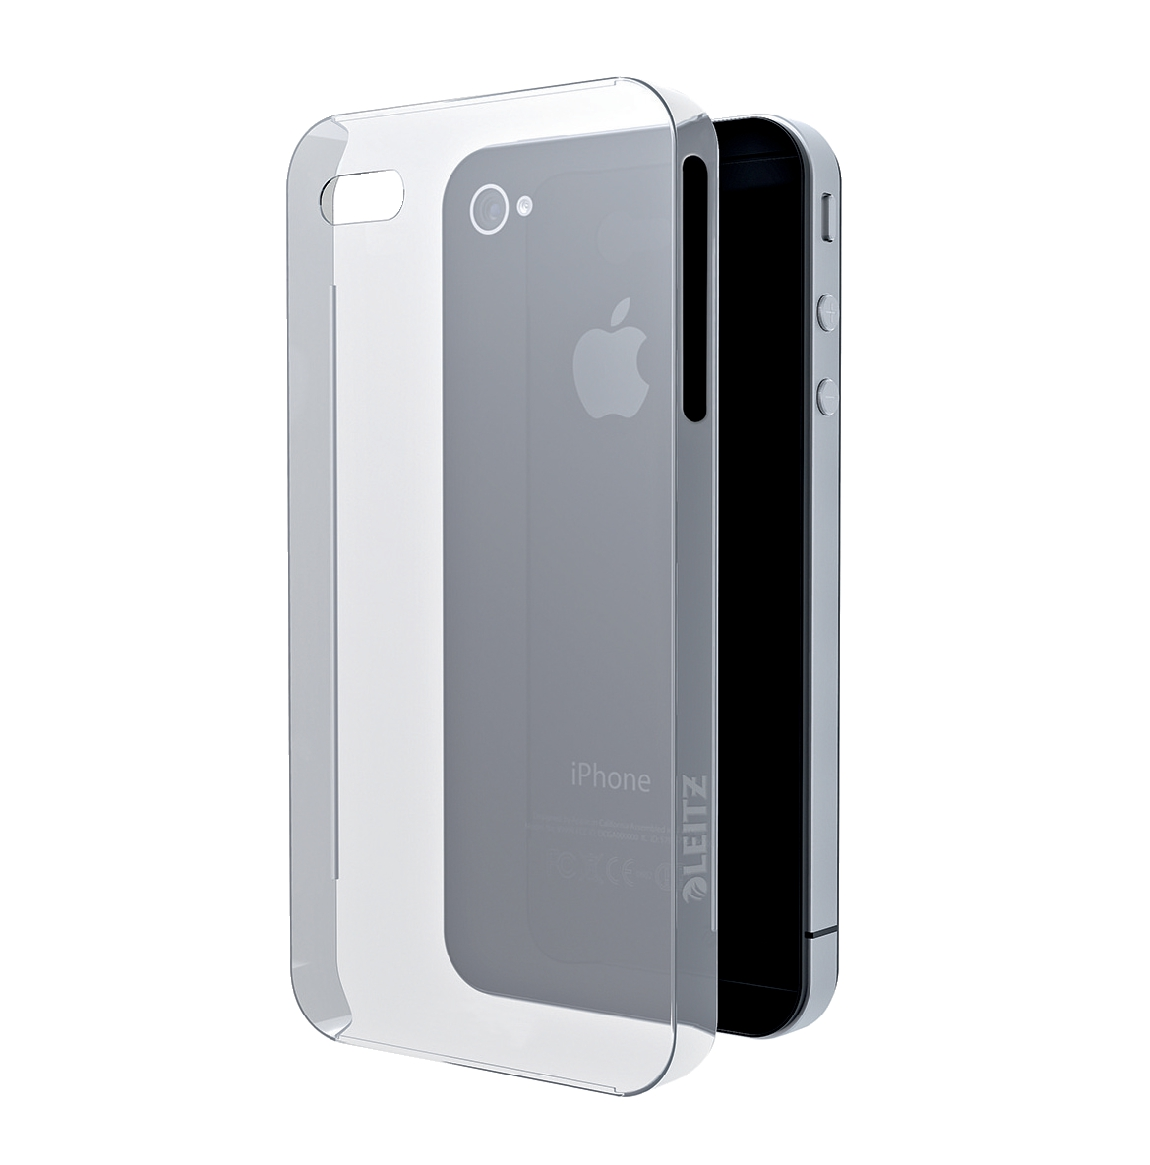 Image for Leitz Complete Case Transparent Iphone (0)